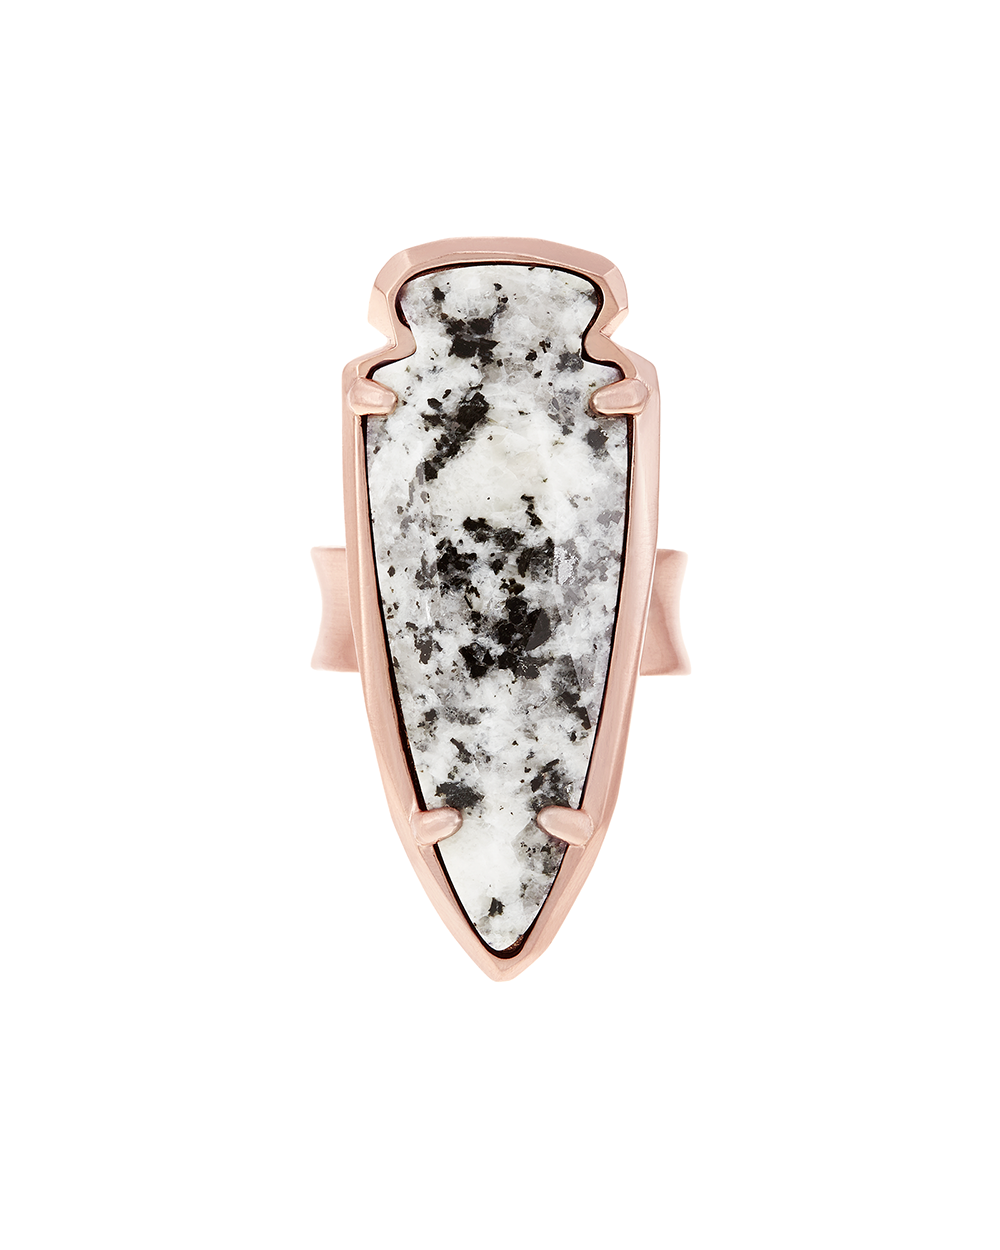 Kendra Scott Kenny Ring In Gray Granite - Kendra Scott Jewelry Wishlist